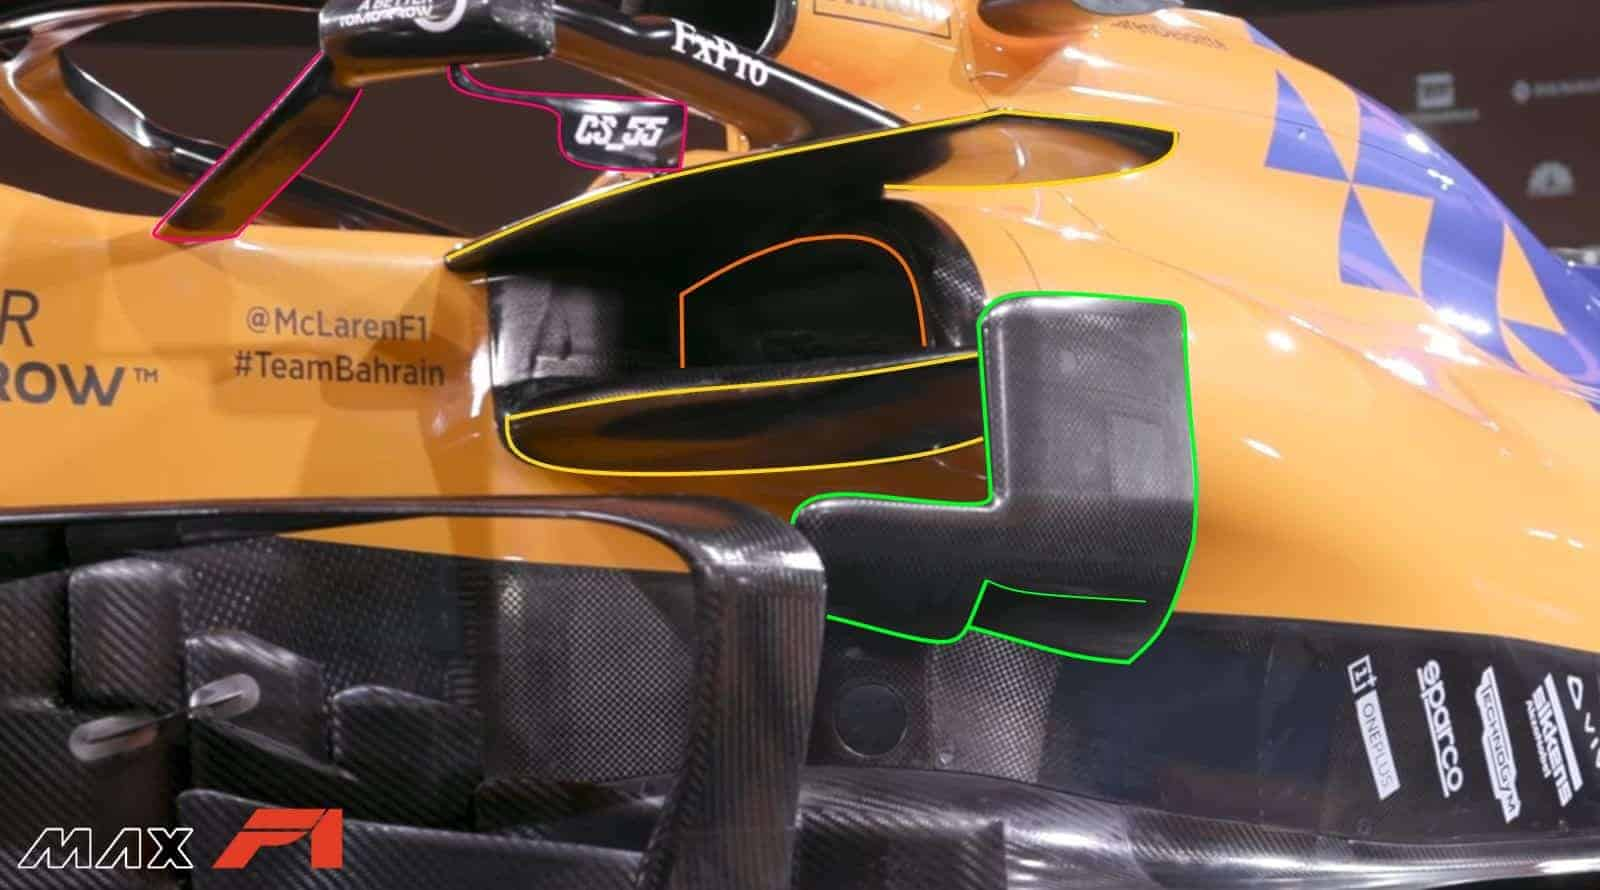 2019 McLaren MCL34 sidepod area inlet bargeboards detail Photo McLaren Edited by MAXF1net